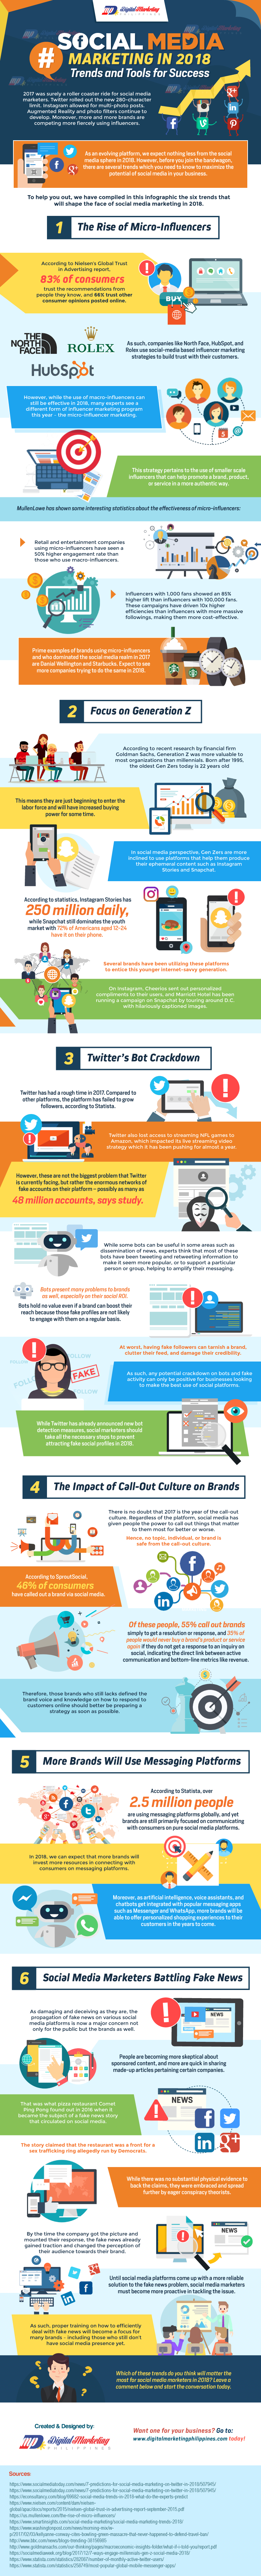 Social Media Marketing in 2018 – Trends and Tools for Success (Infographic) - An Infographic from Digital Marketing Philippines